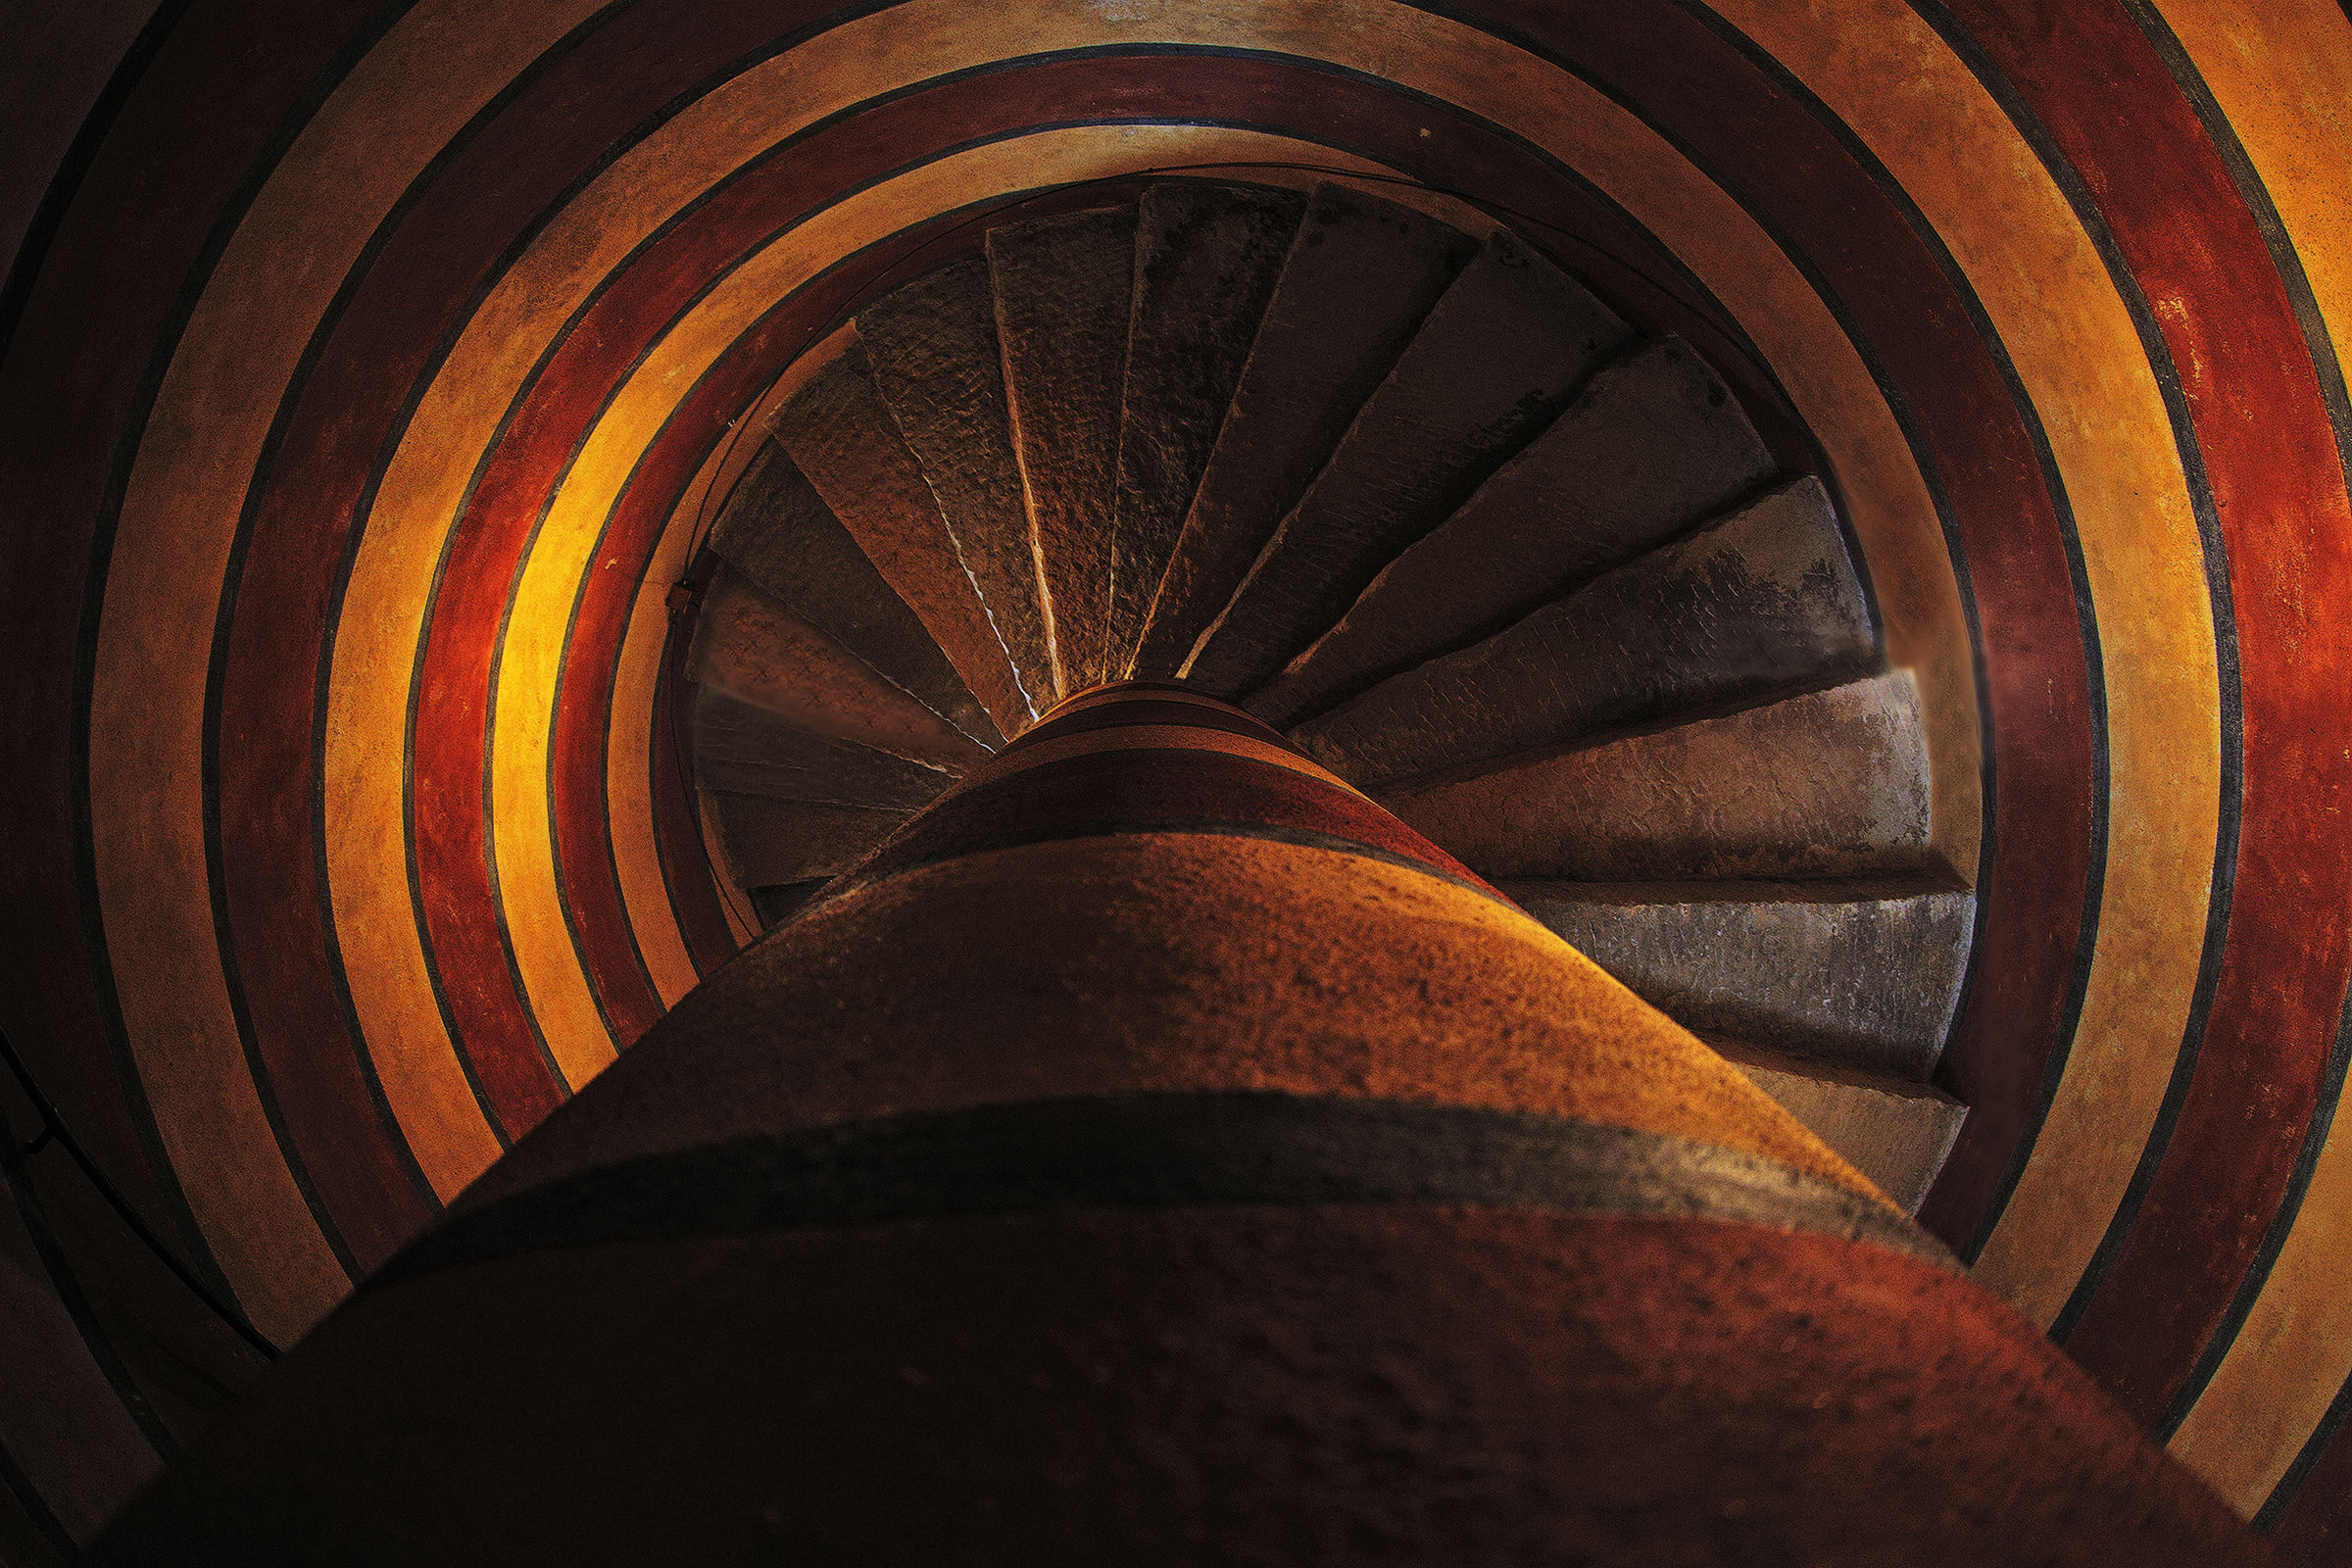 The spiral staircase...